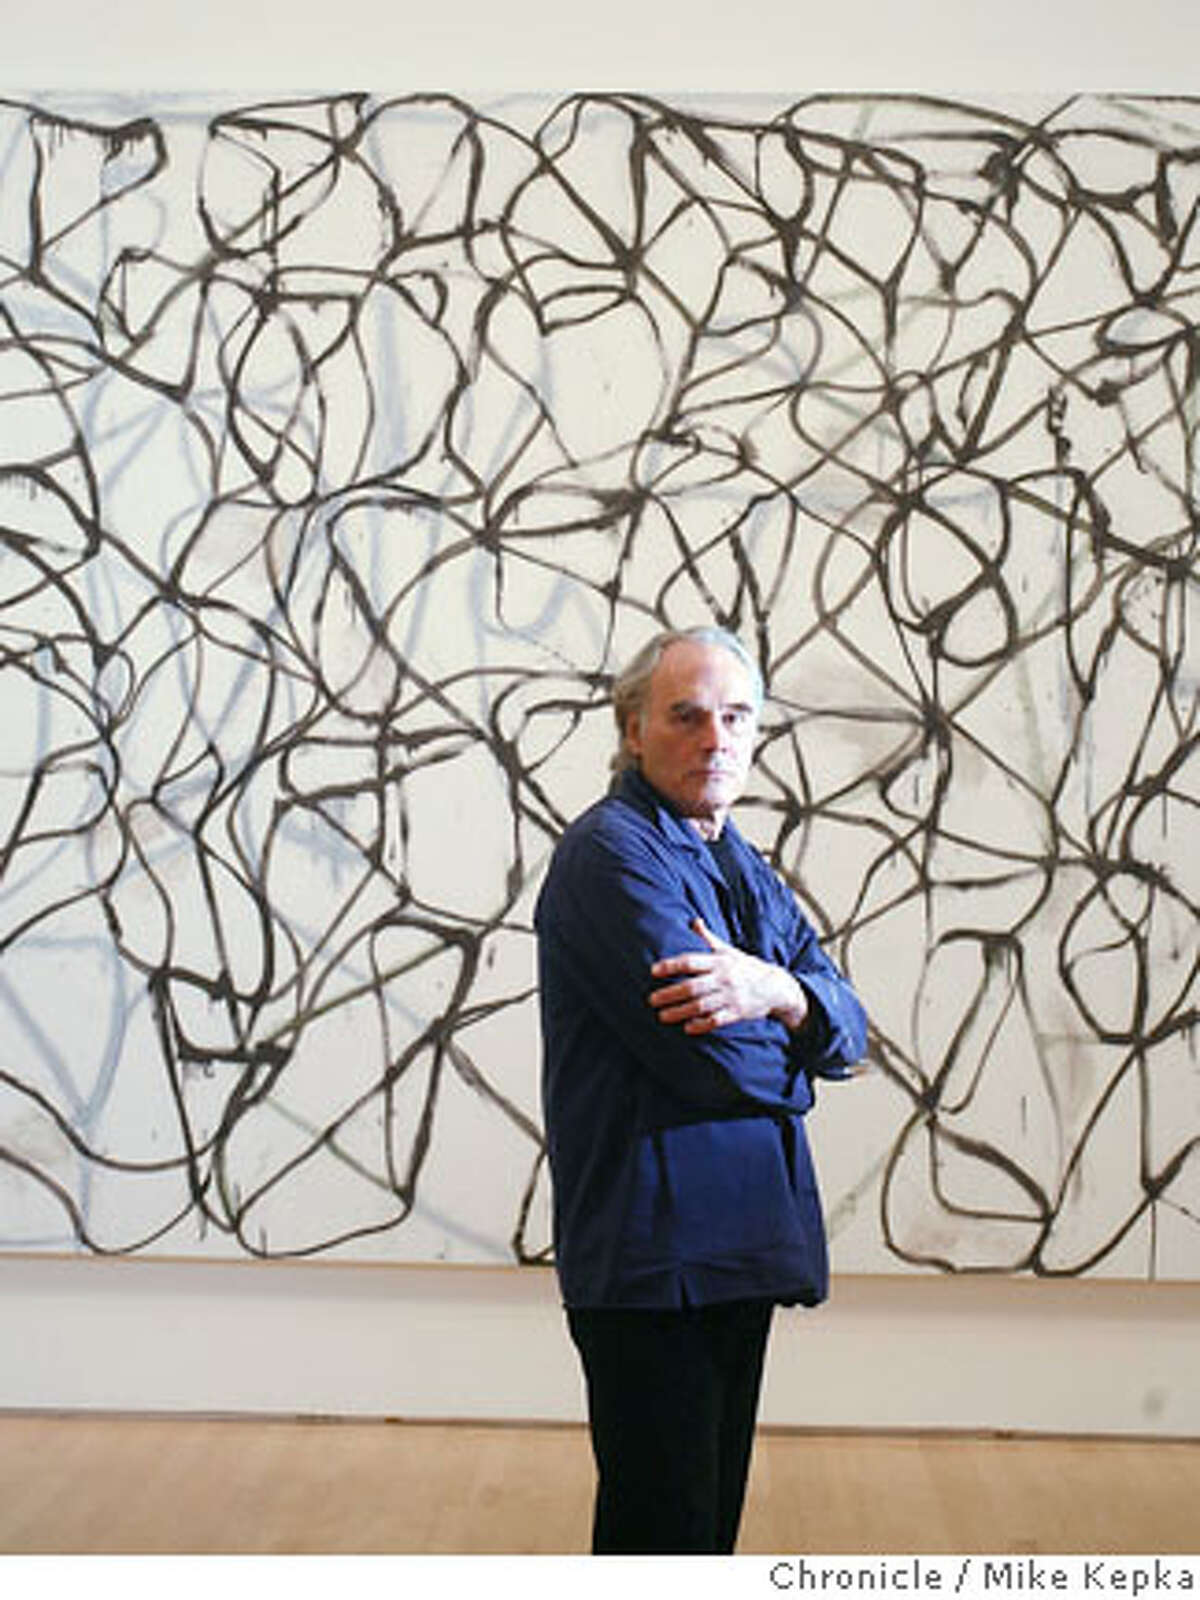 bricemarden0400036_mk.JPG New York artist Brice Marden has a new show opening at SFMOMA this week. 2/21/07. Mike Kepka / The Chronicle Brice Marden (cq) the source MANDATORY CREDIT FOR PHOTOG AND SF CHRONICLE/NO SALES-MAGS OUT